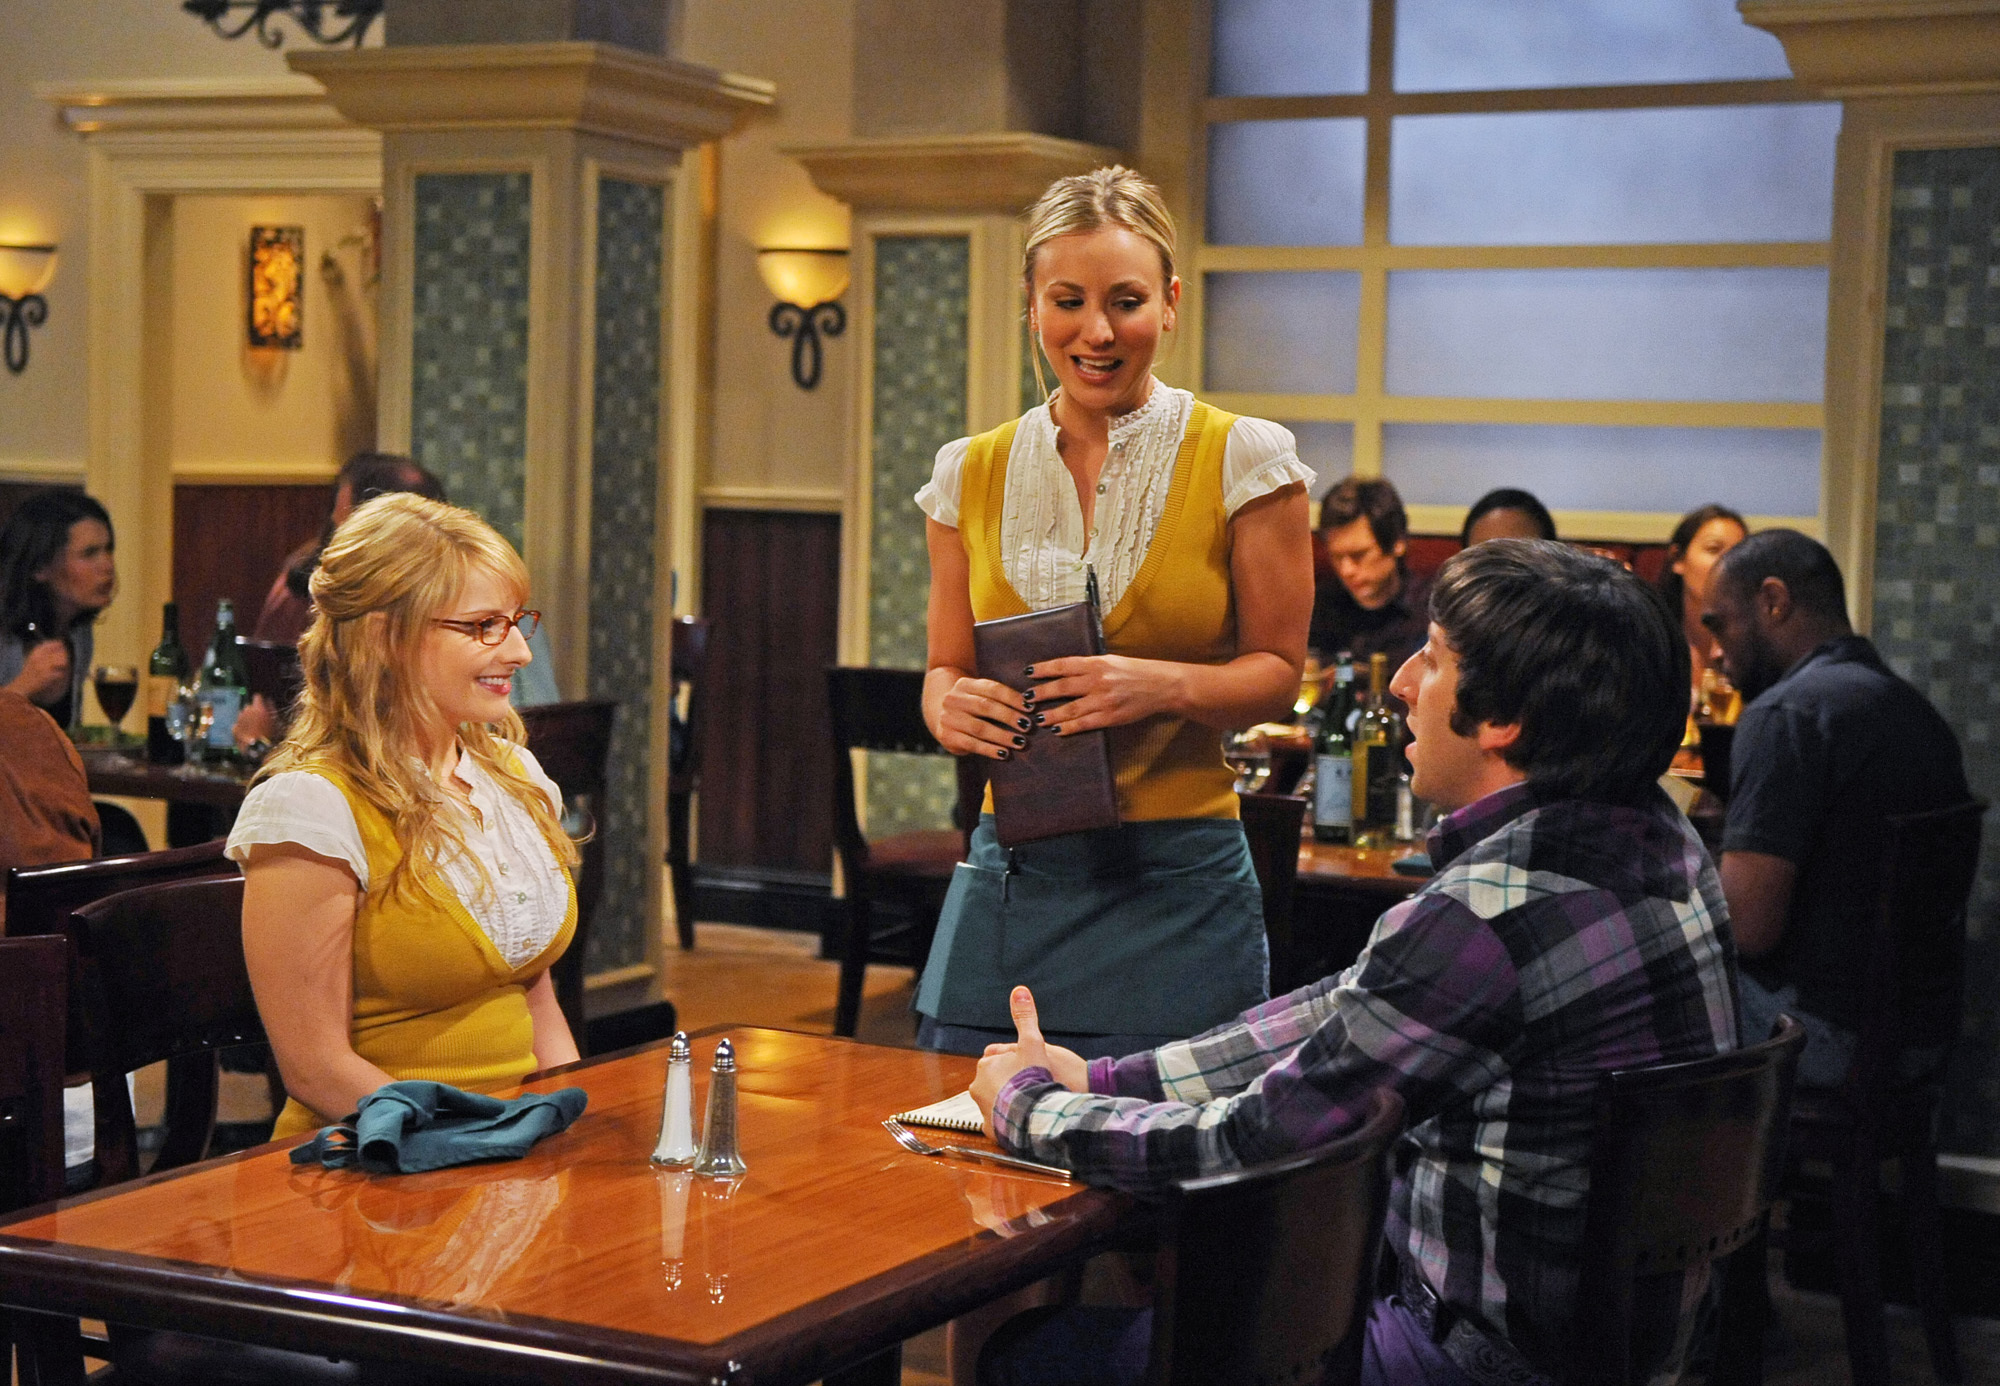 """""""The Hot Troll Deviation"""" -- An embarrassing secret of Wolowitz's comes to light on THE BIG BANG THEORY, Thursday, Oct. 14 (8:00-8:31 PM, ET/PT) on the CBS Television Network. pictured left to right: Melissa Rauch, Kaley Cuoco, Simon HelbergPhoto: Ron P. Jaffe/CBS©2010 CBS Broadcasting Inc. All Rights Reserved."""